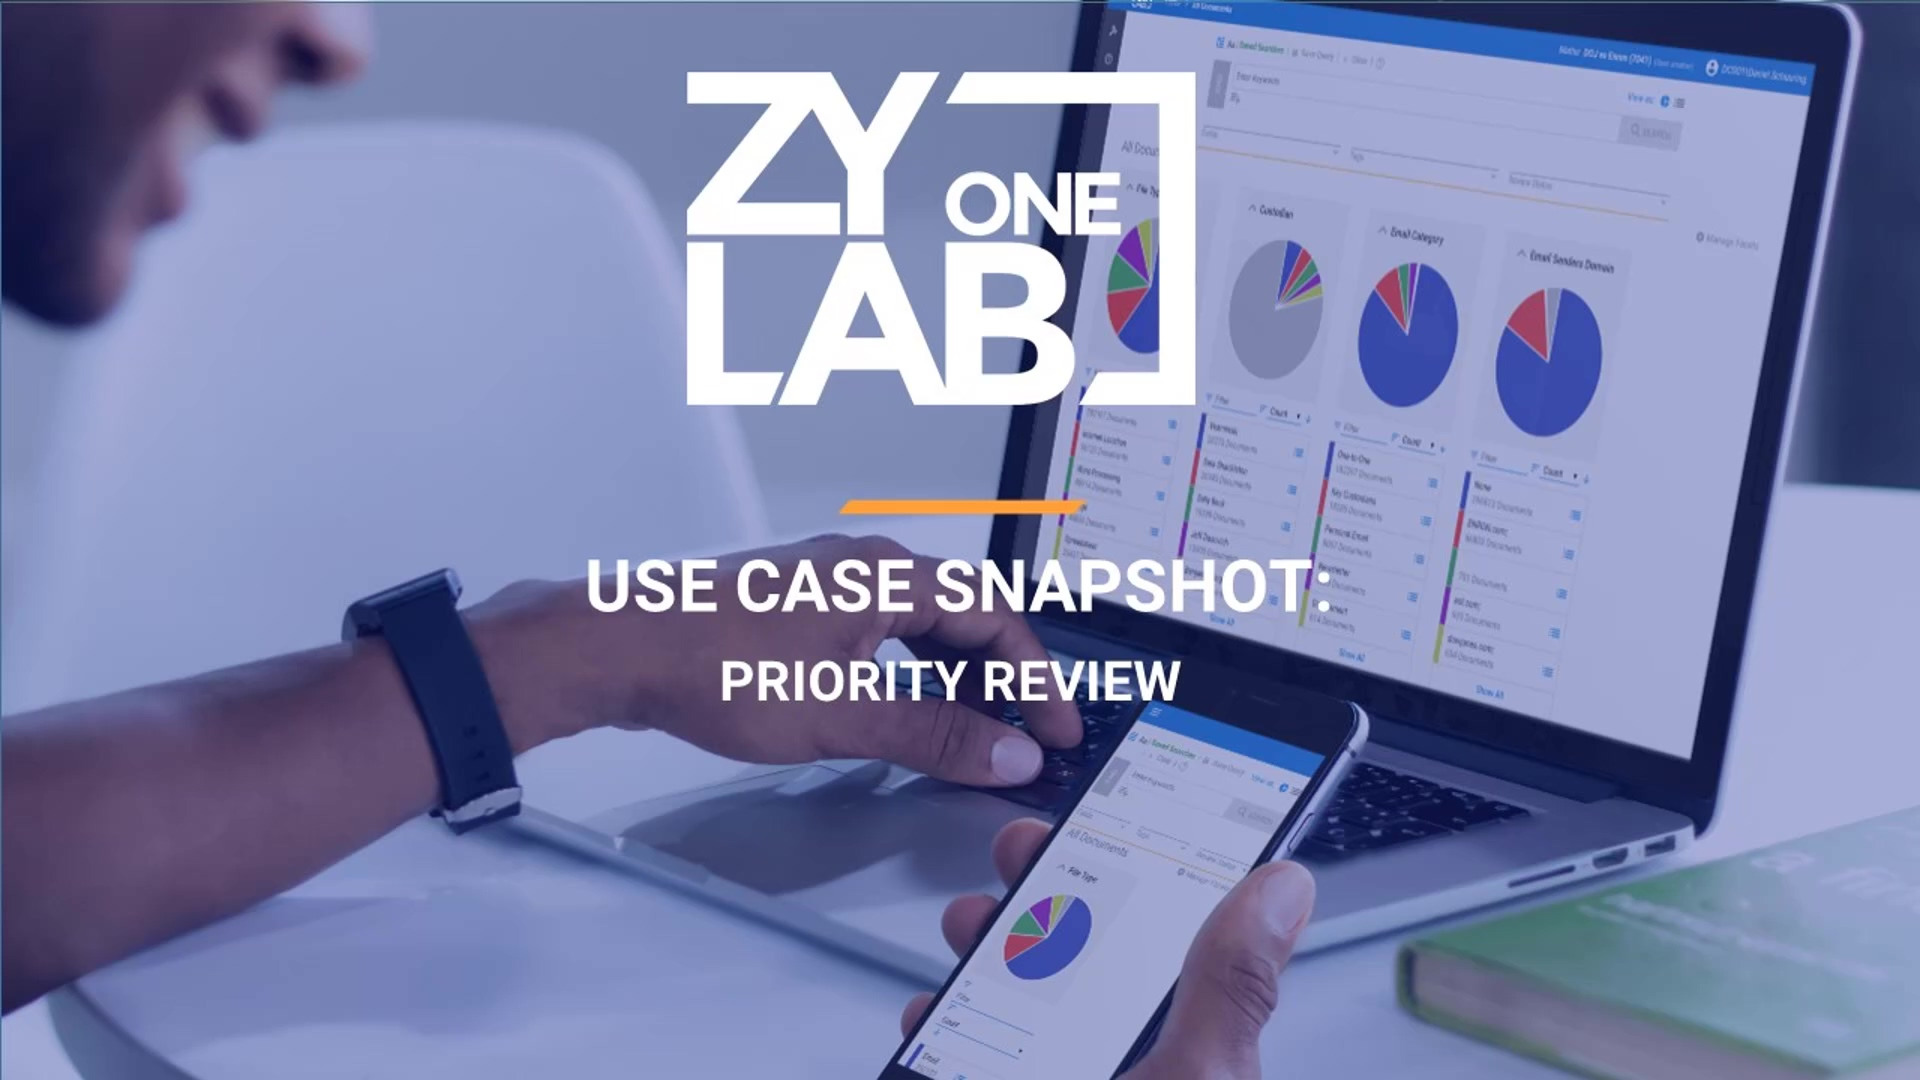 Use Case Snapshot - Priority Review